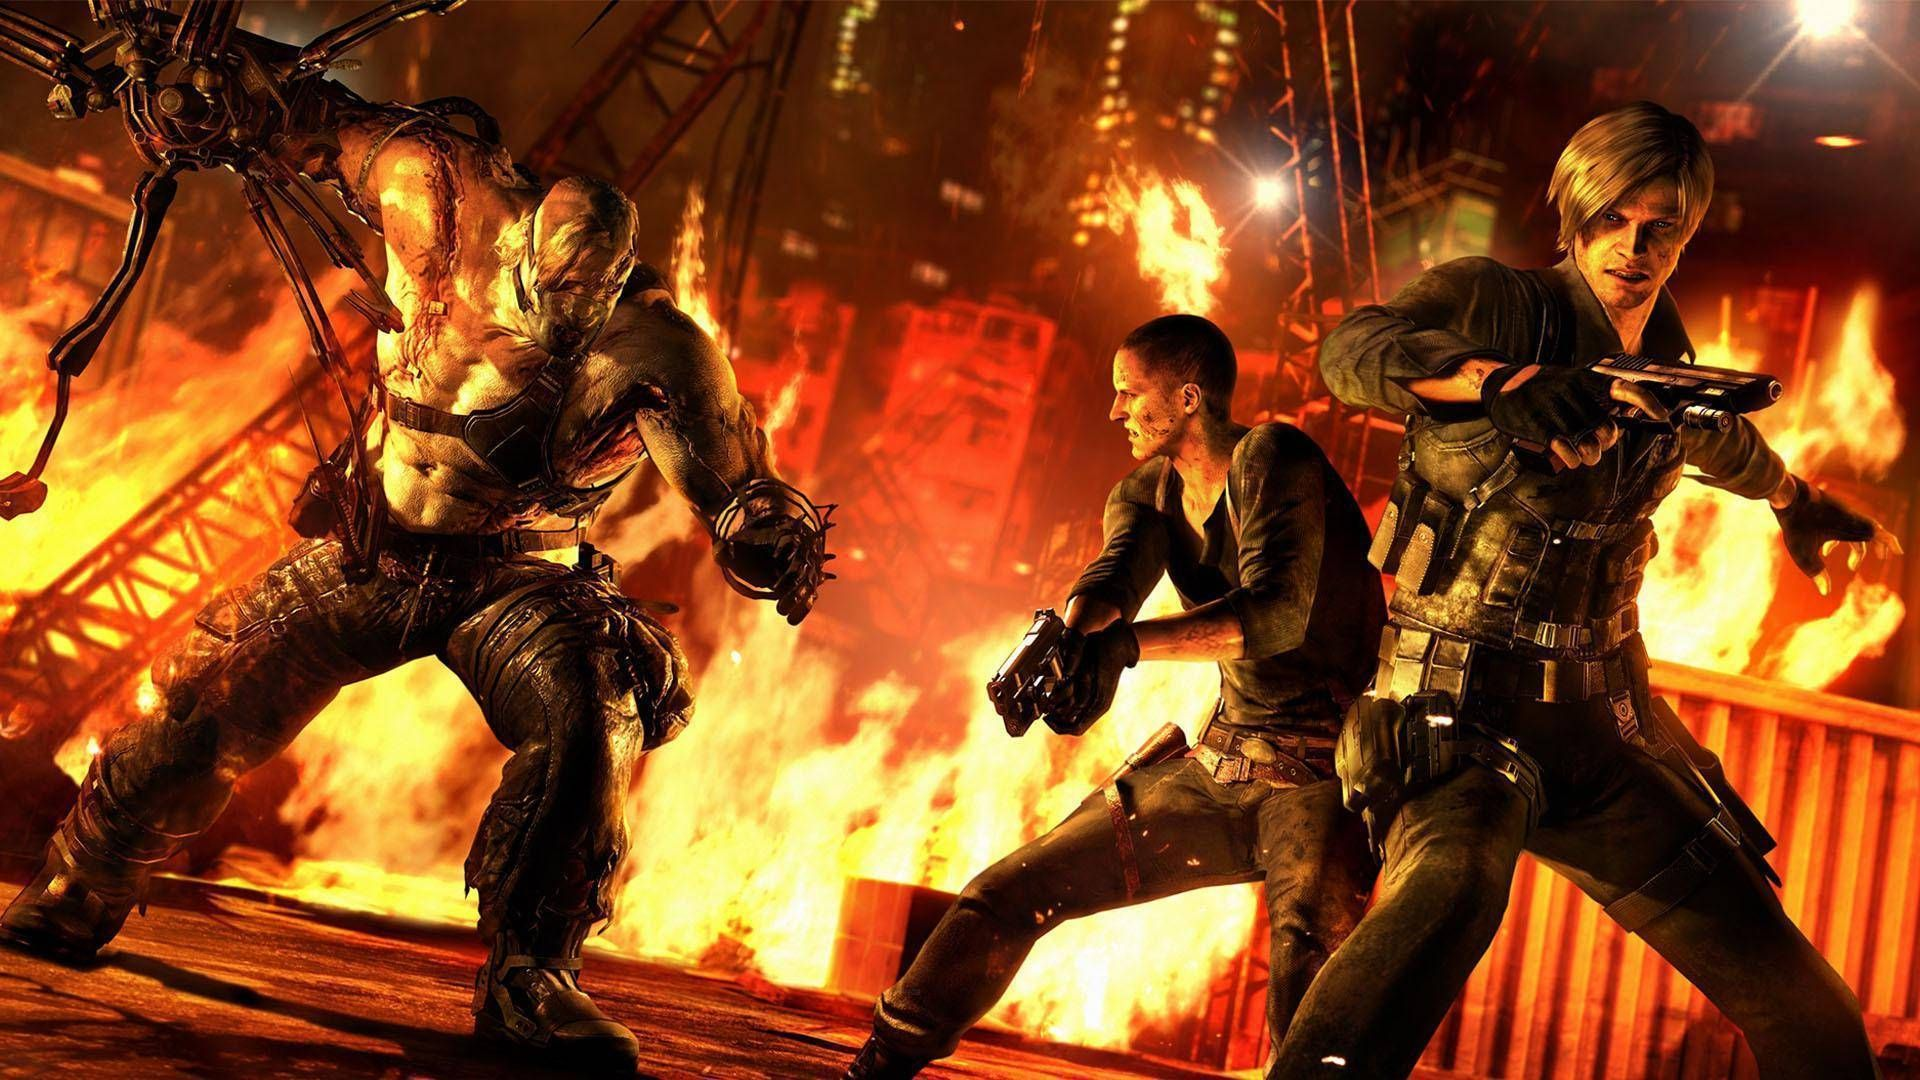 Buy Resident Evil 6 Ps4 Compare Prices Resident Evil Resident Evil Ps4 Resident Evil 5